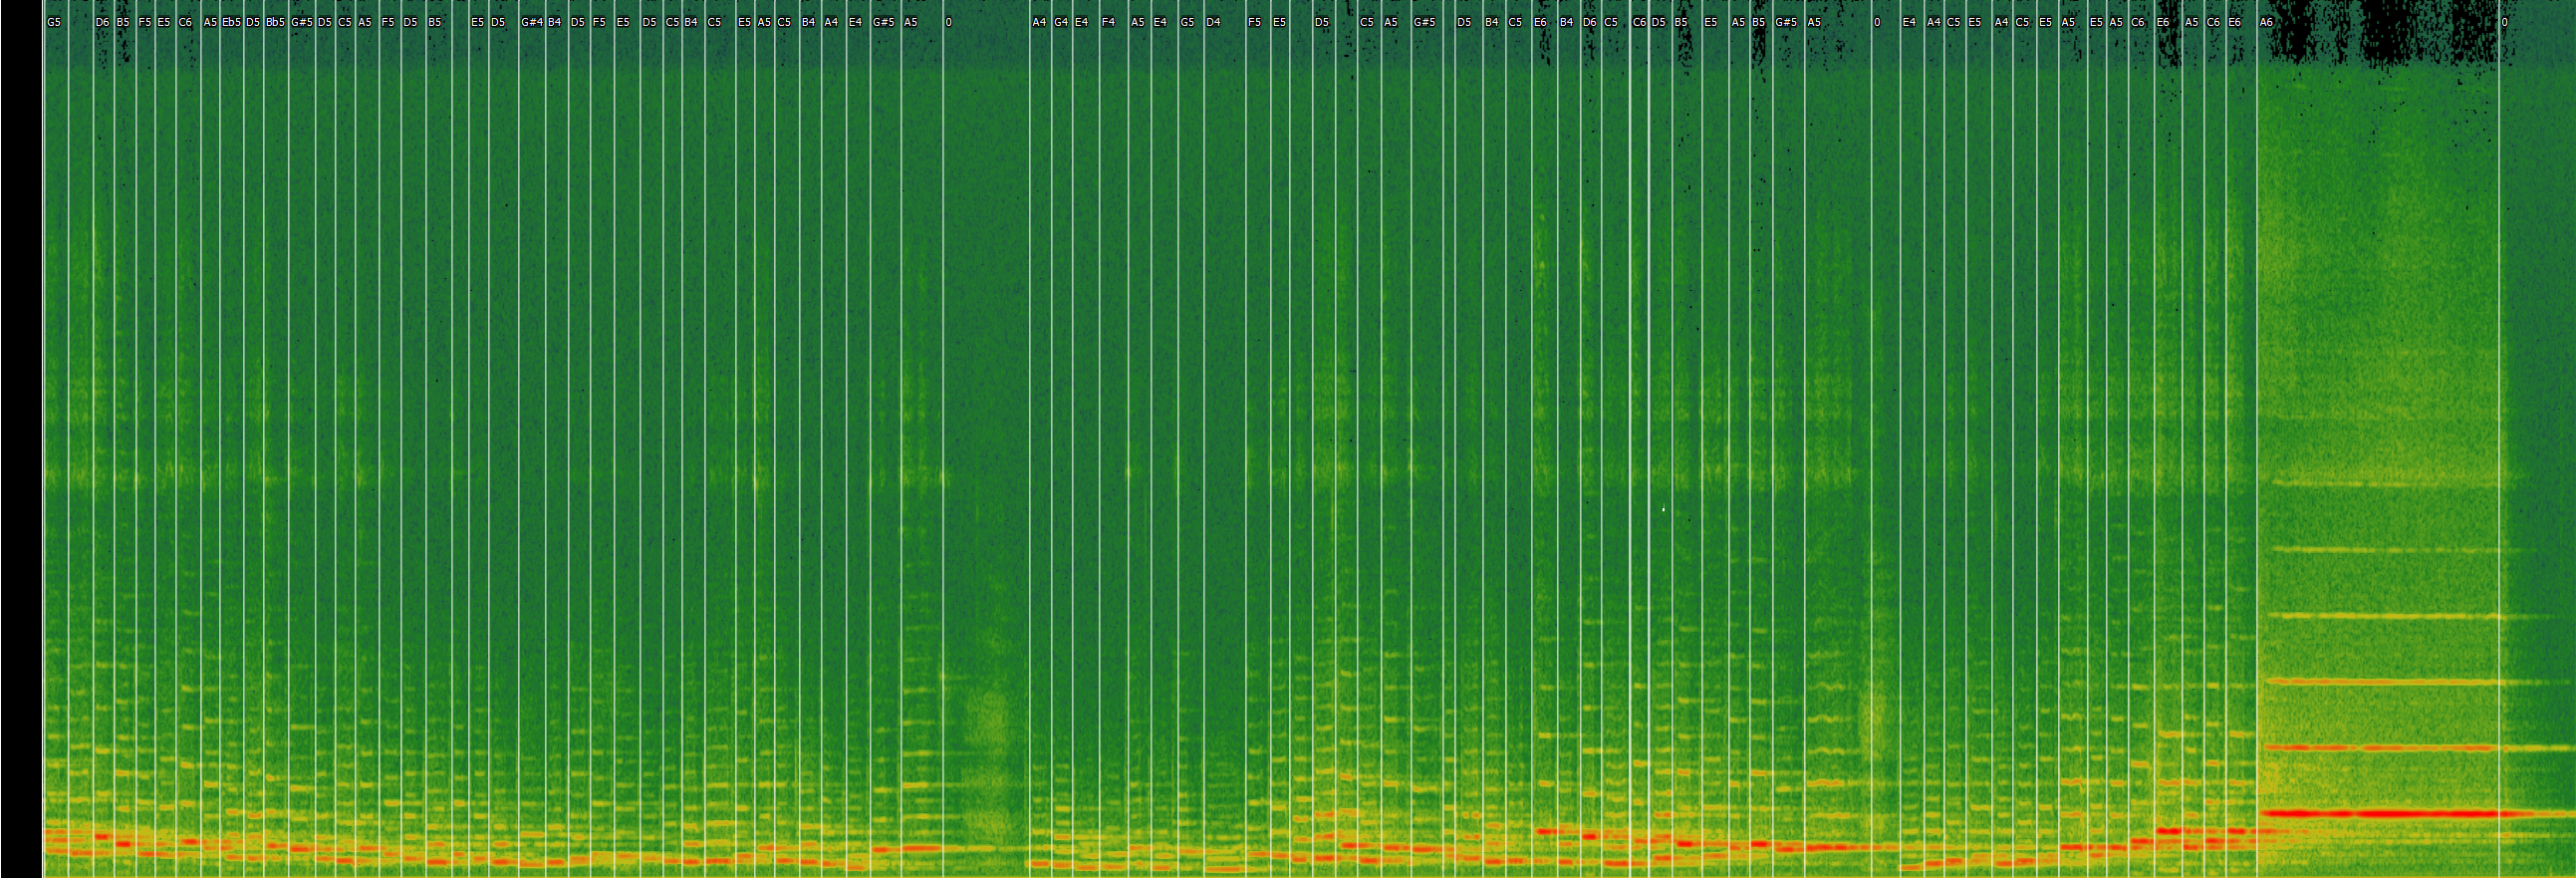 Traditional Flute Dataset for Score Alignment   Kaggle